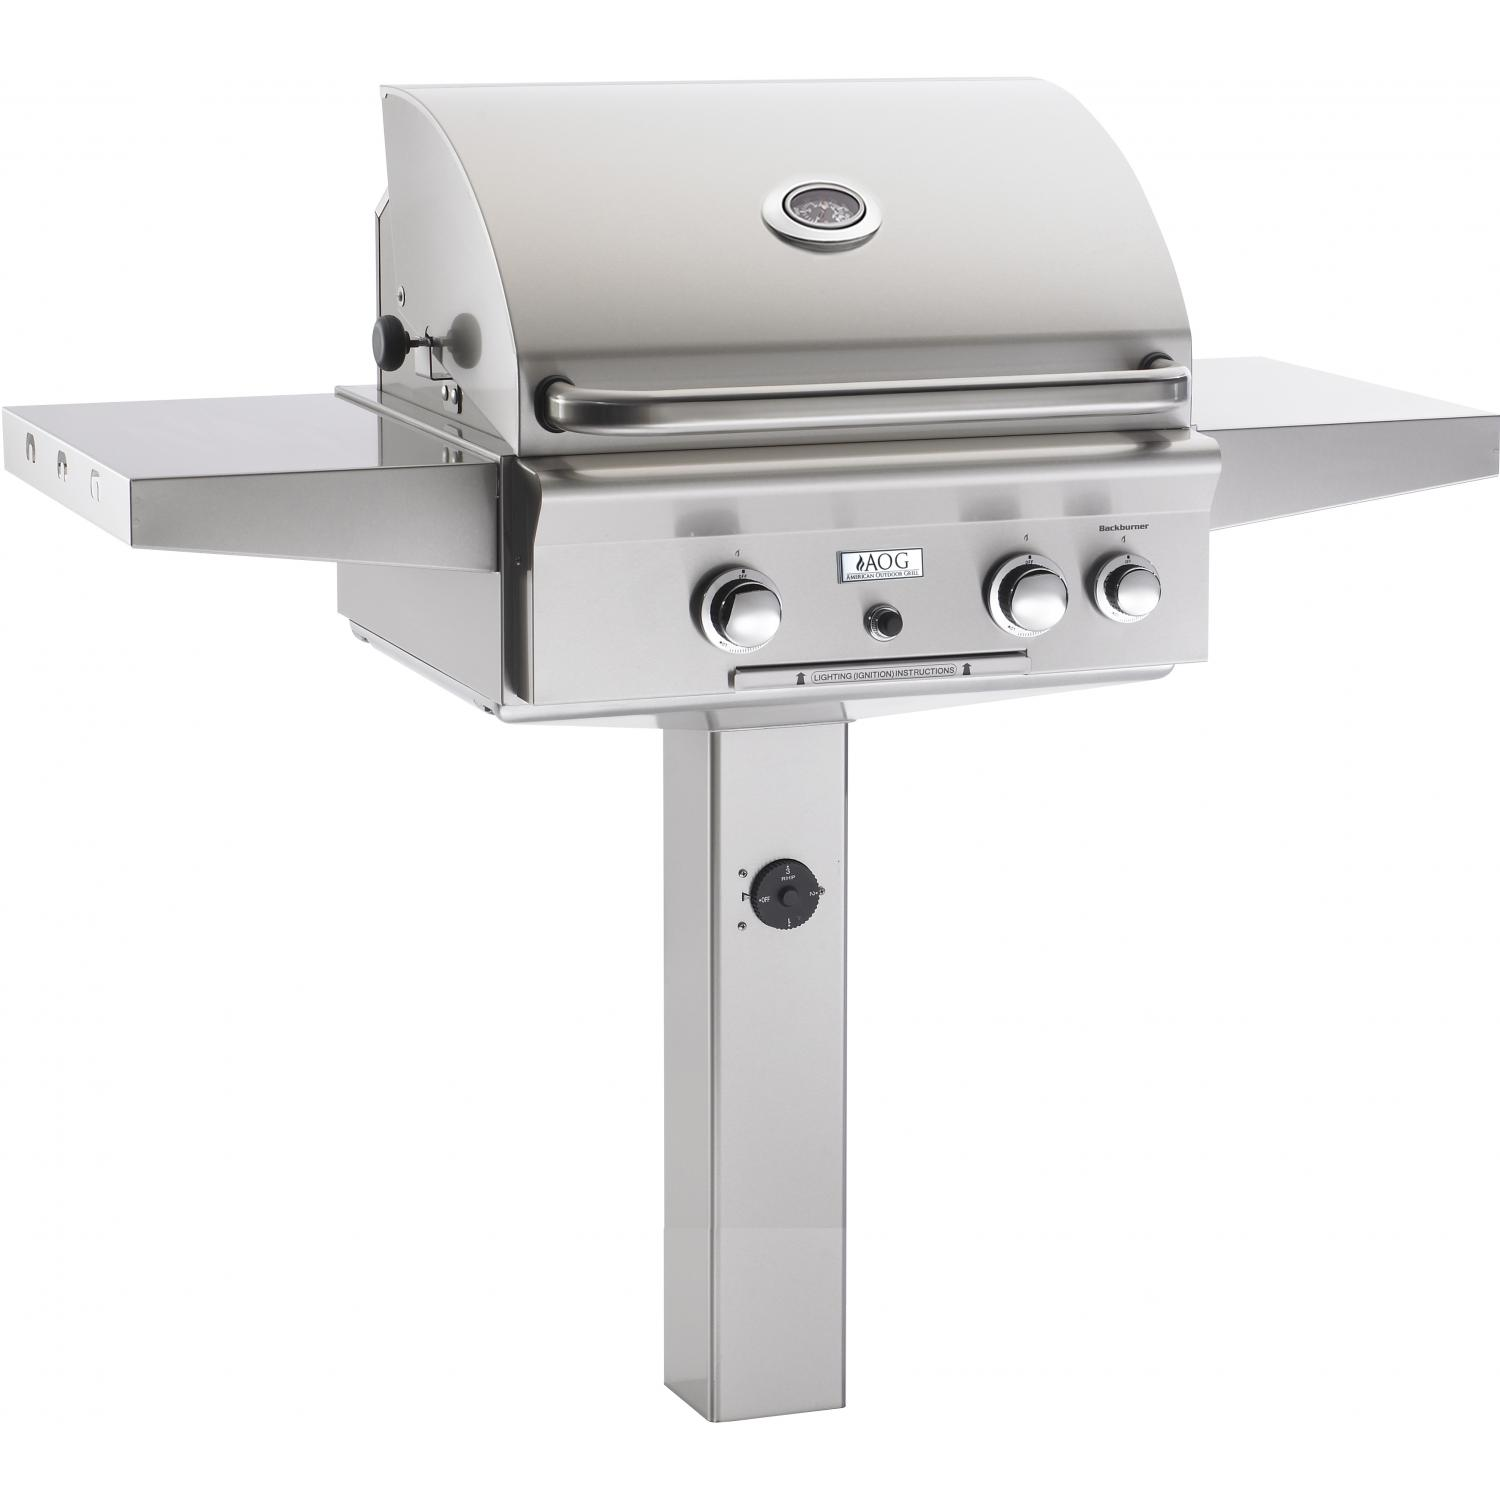 American Outdoor Grill 24 Inch Natural Gas Grill W/ Rotisserie On In-Ground Post